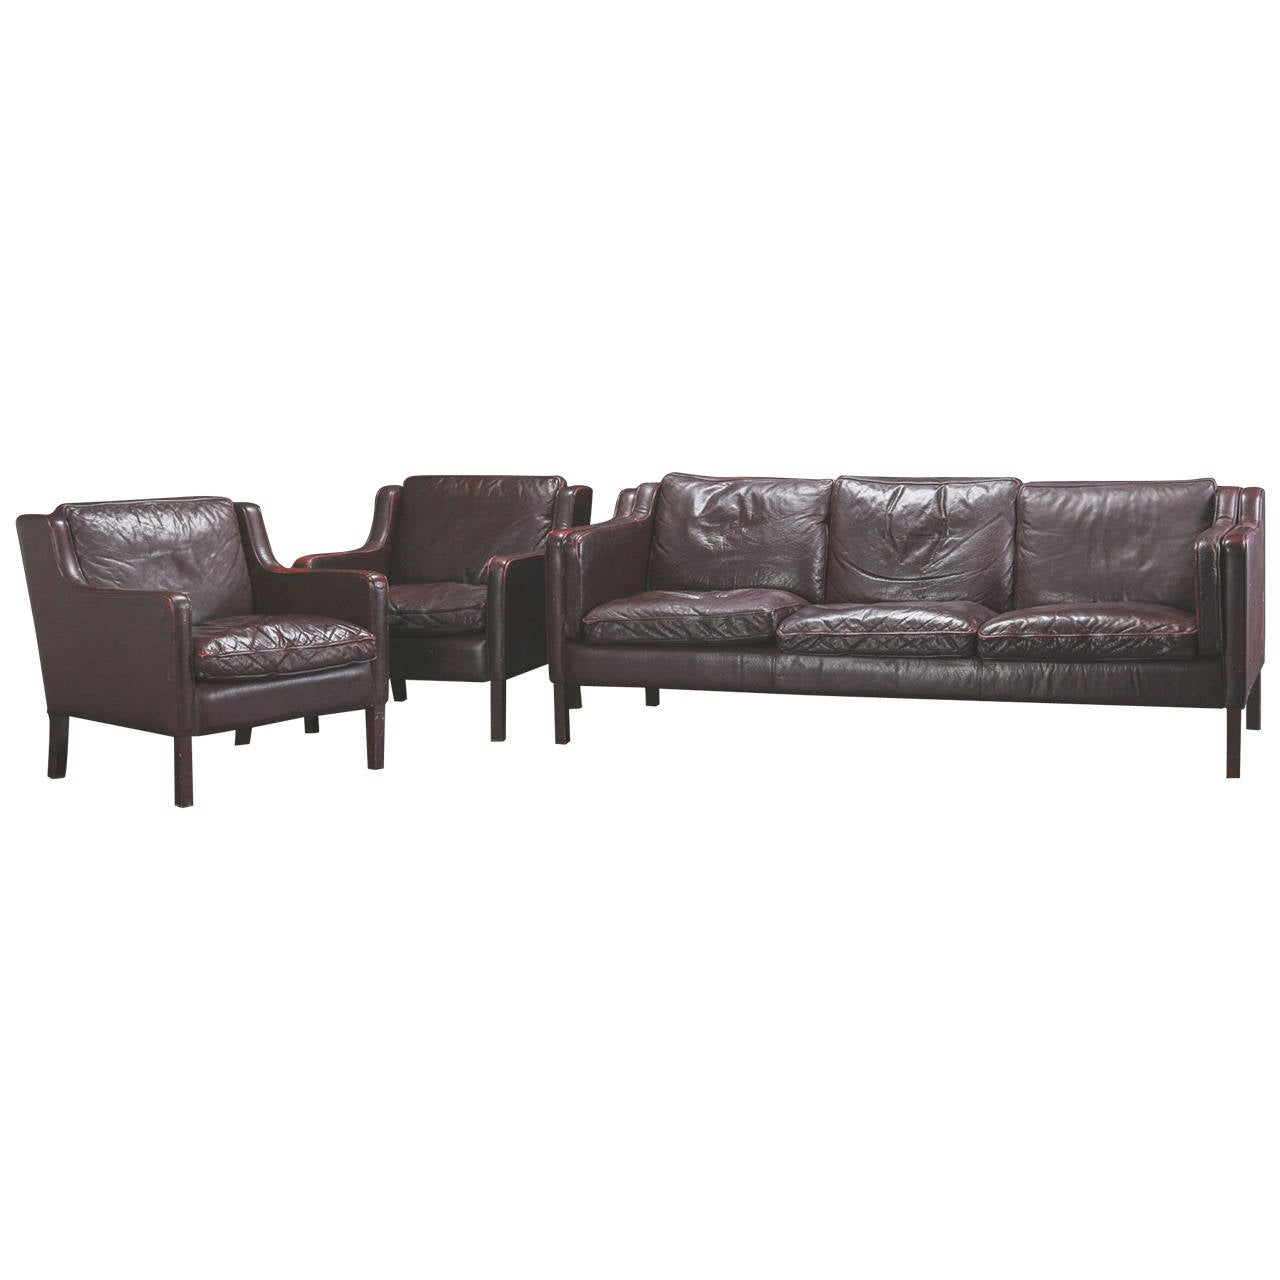 set of danish modern leather furniture consisting of two